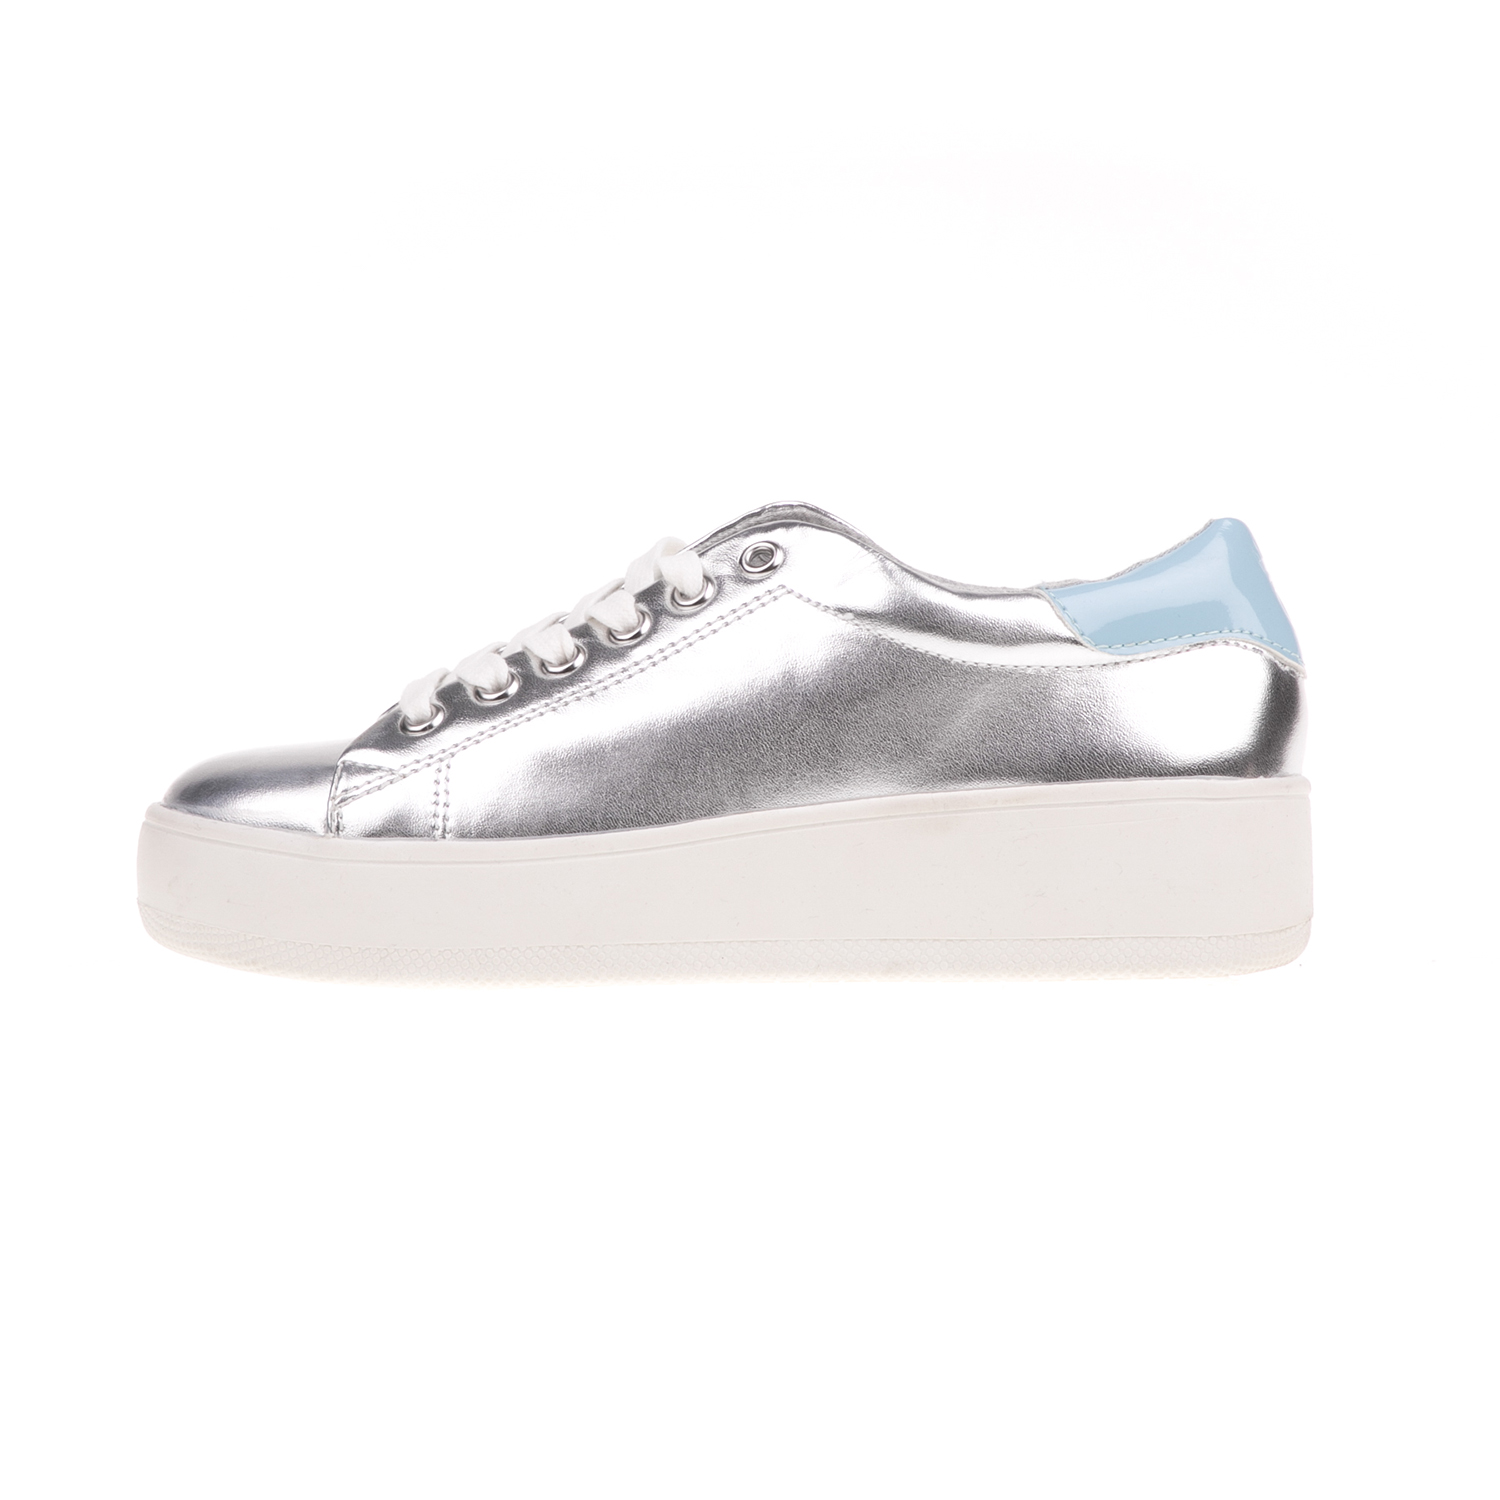 JUICY COUTURE – Γυναικεία sneakers BELLONAA JUICY COUTURE ασημί